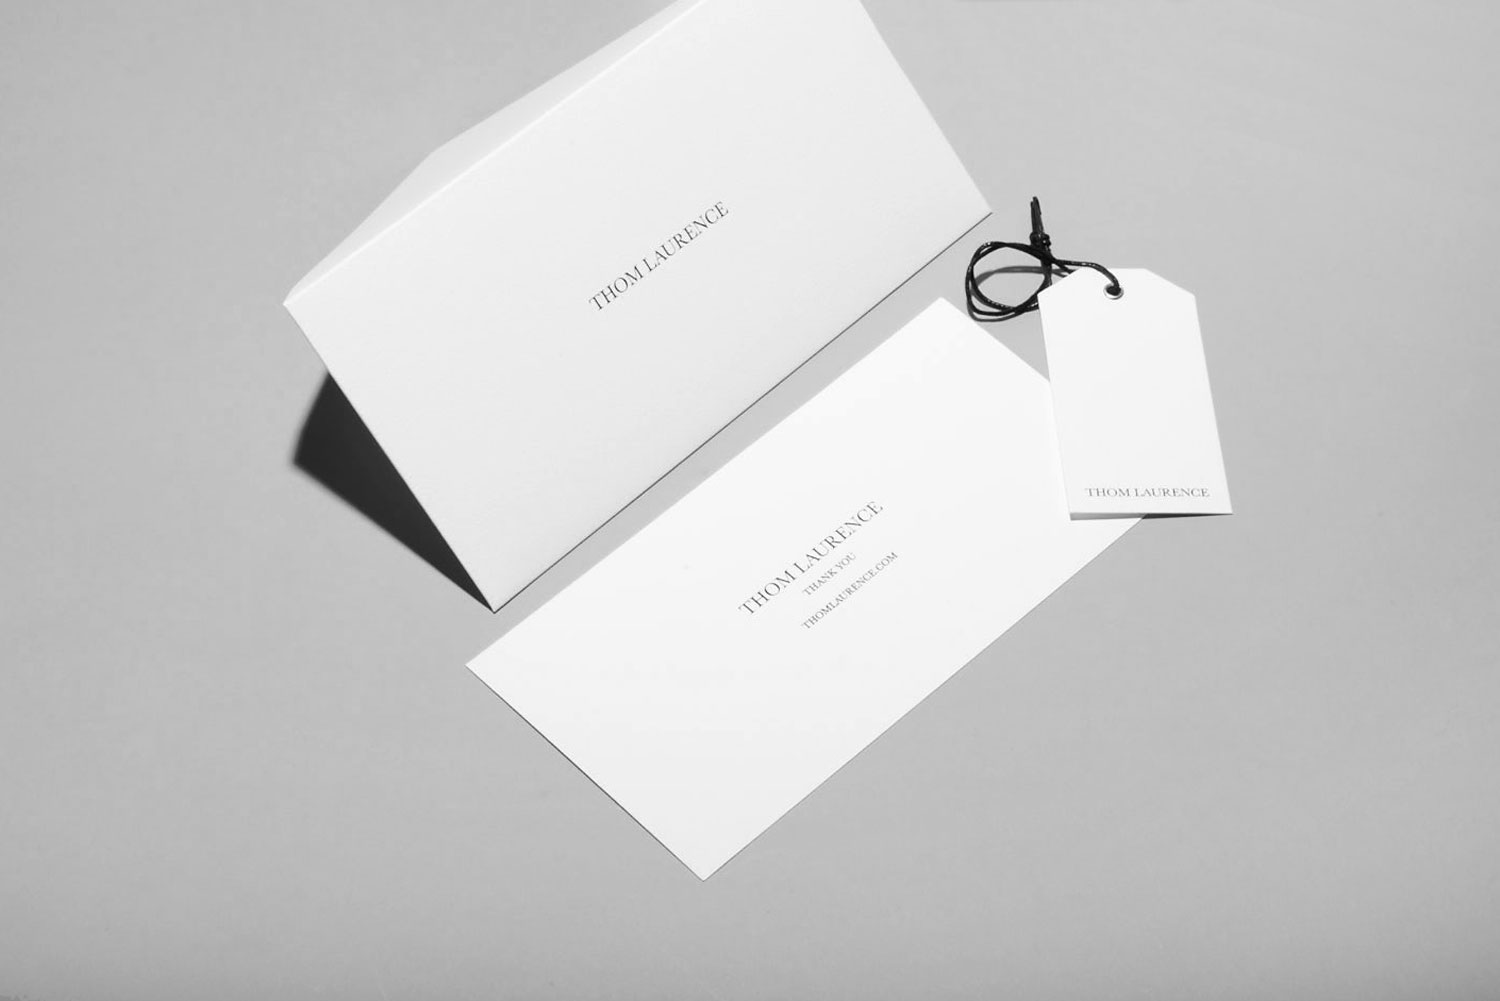 Progress Packaging Thom Laurence Bespoke Luxury Colorplan Embossed Blackfoil Box Manufacture Production Print 06